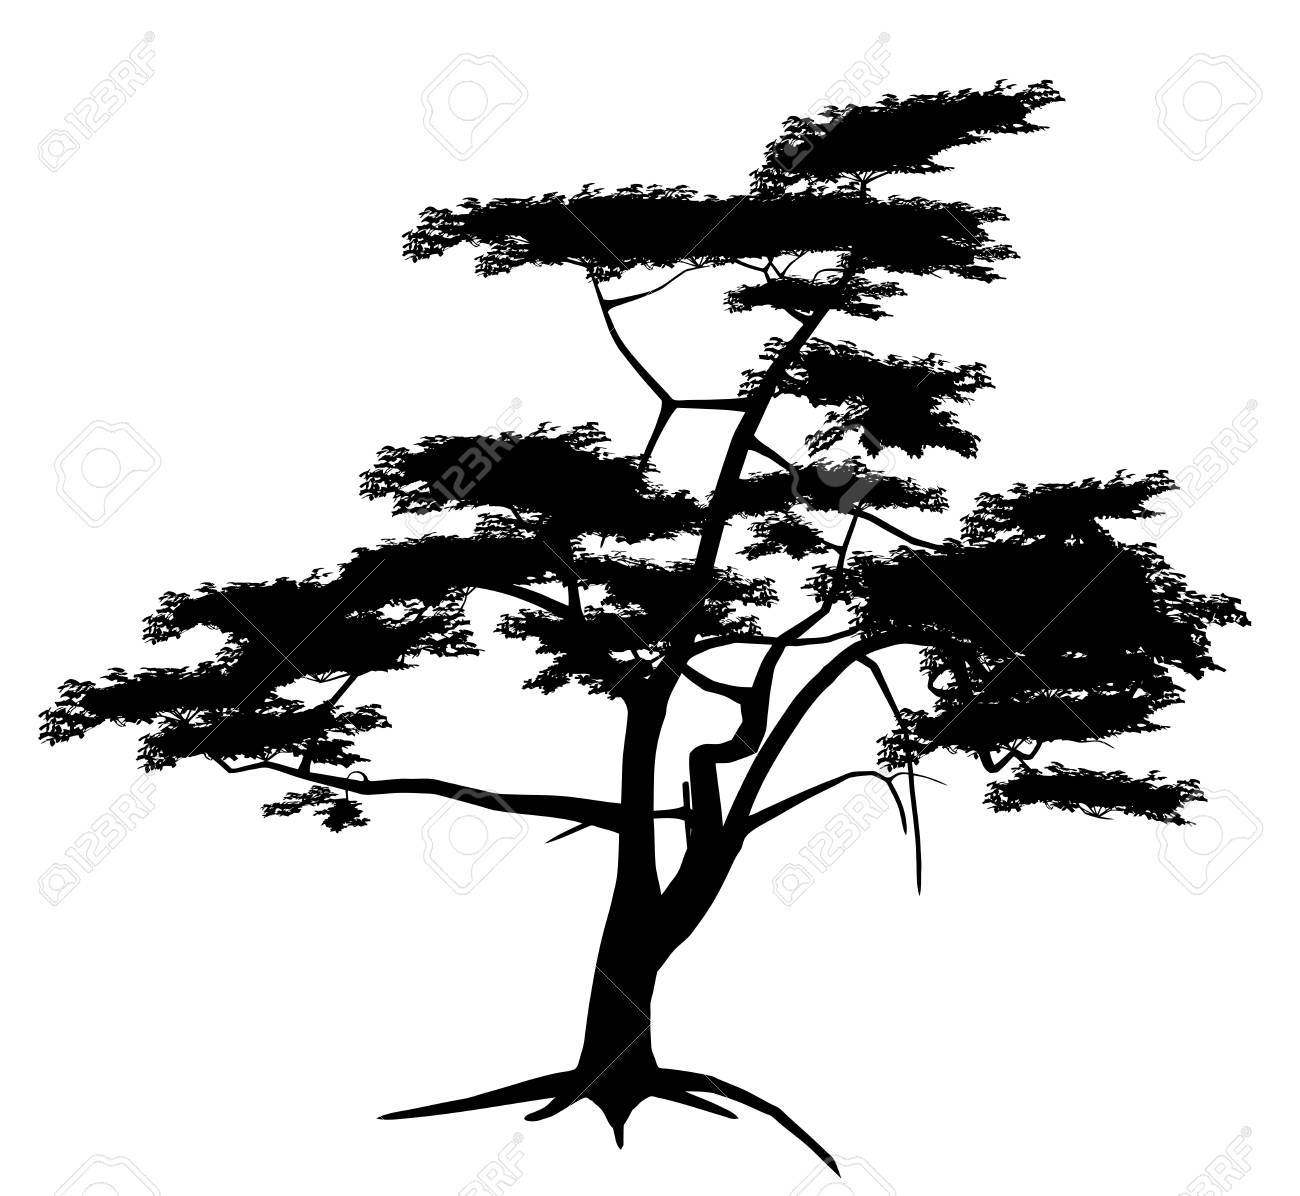 43 651 tree outline cliparts stock vector and royalty free tree